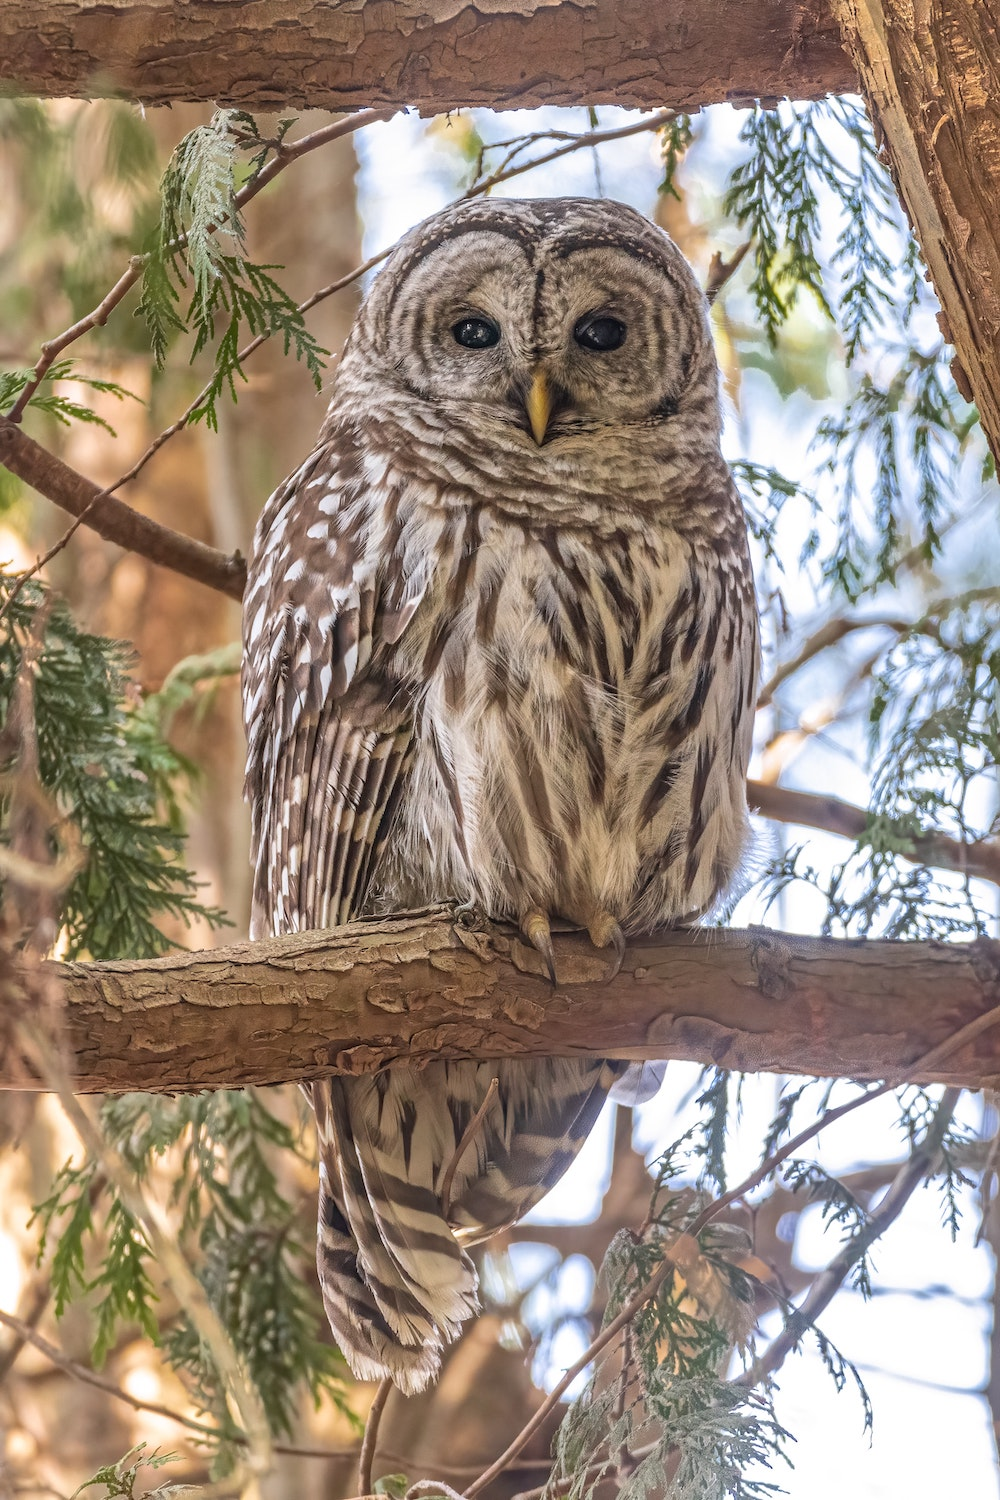 A brown, white, and gray owl perches in an evergreen tree.